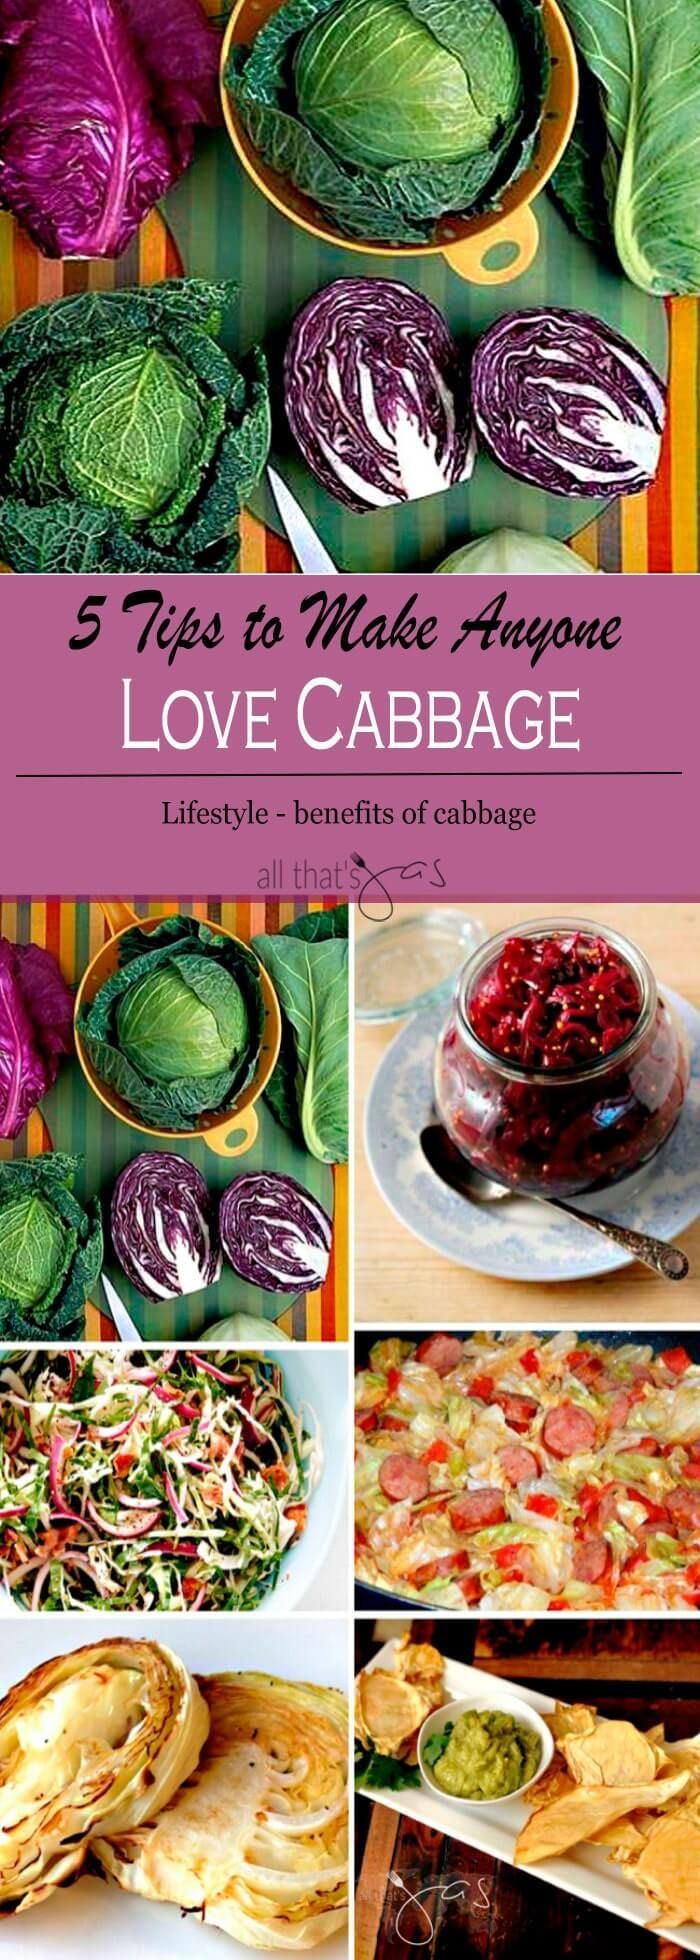 Tips on making a cabbage hater into a cabbage lover